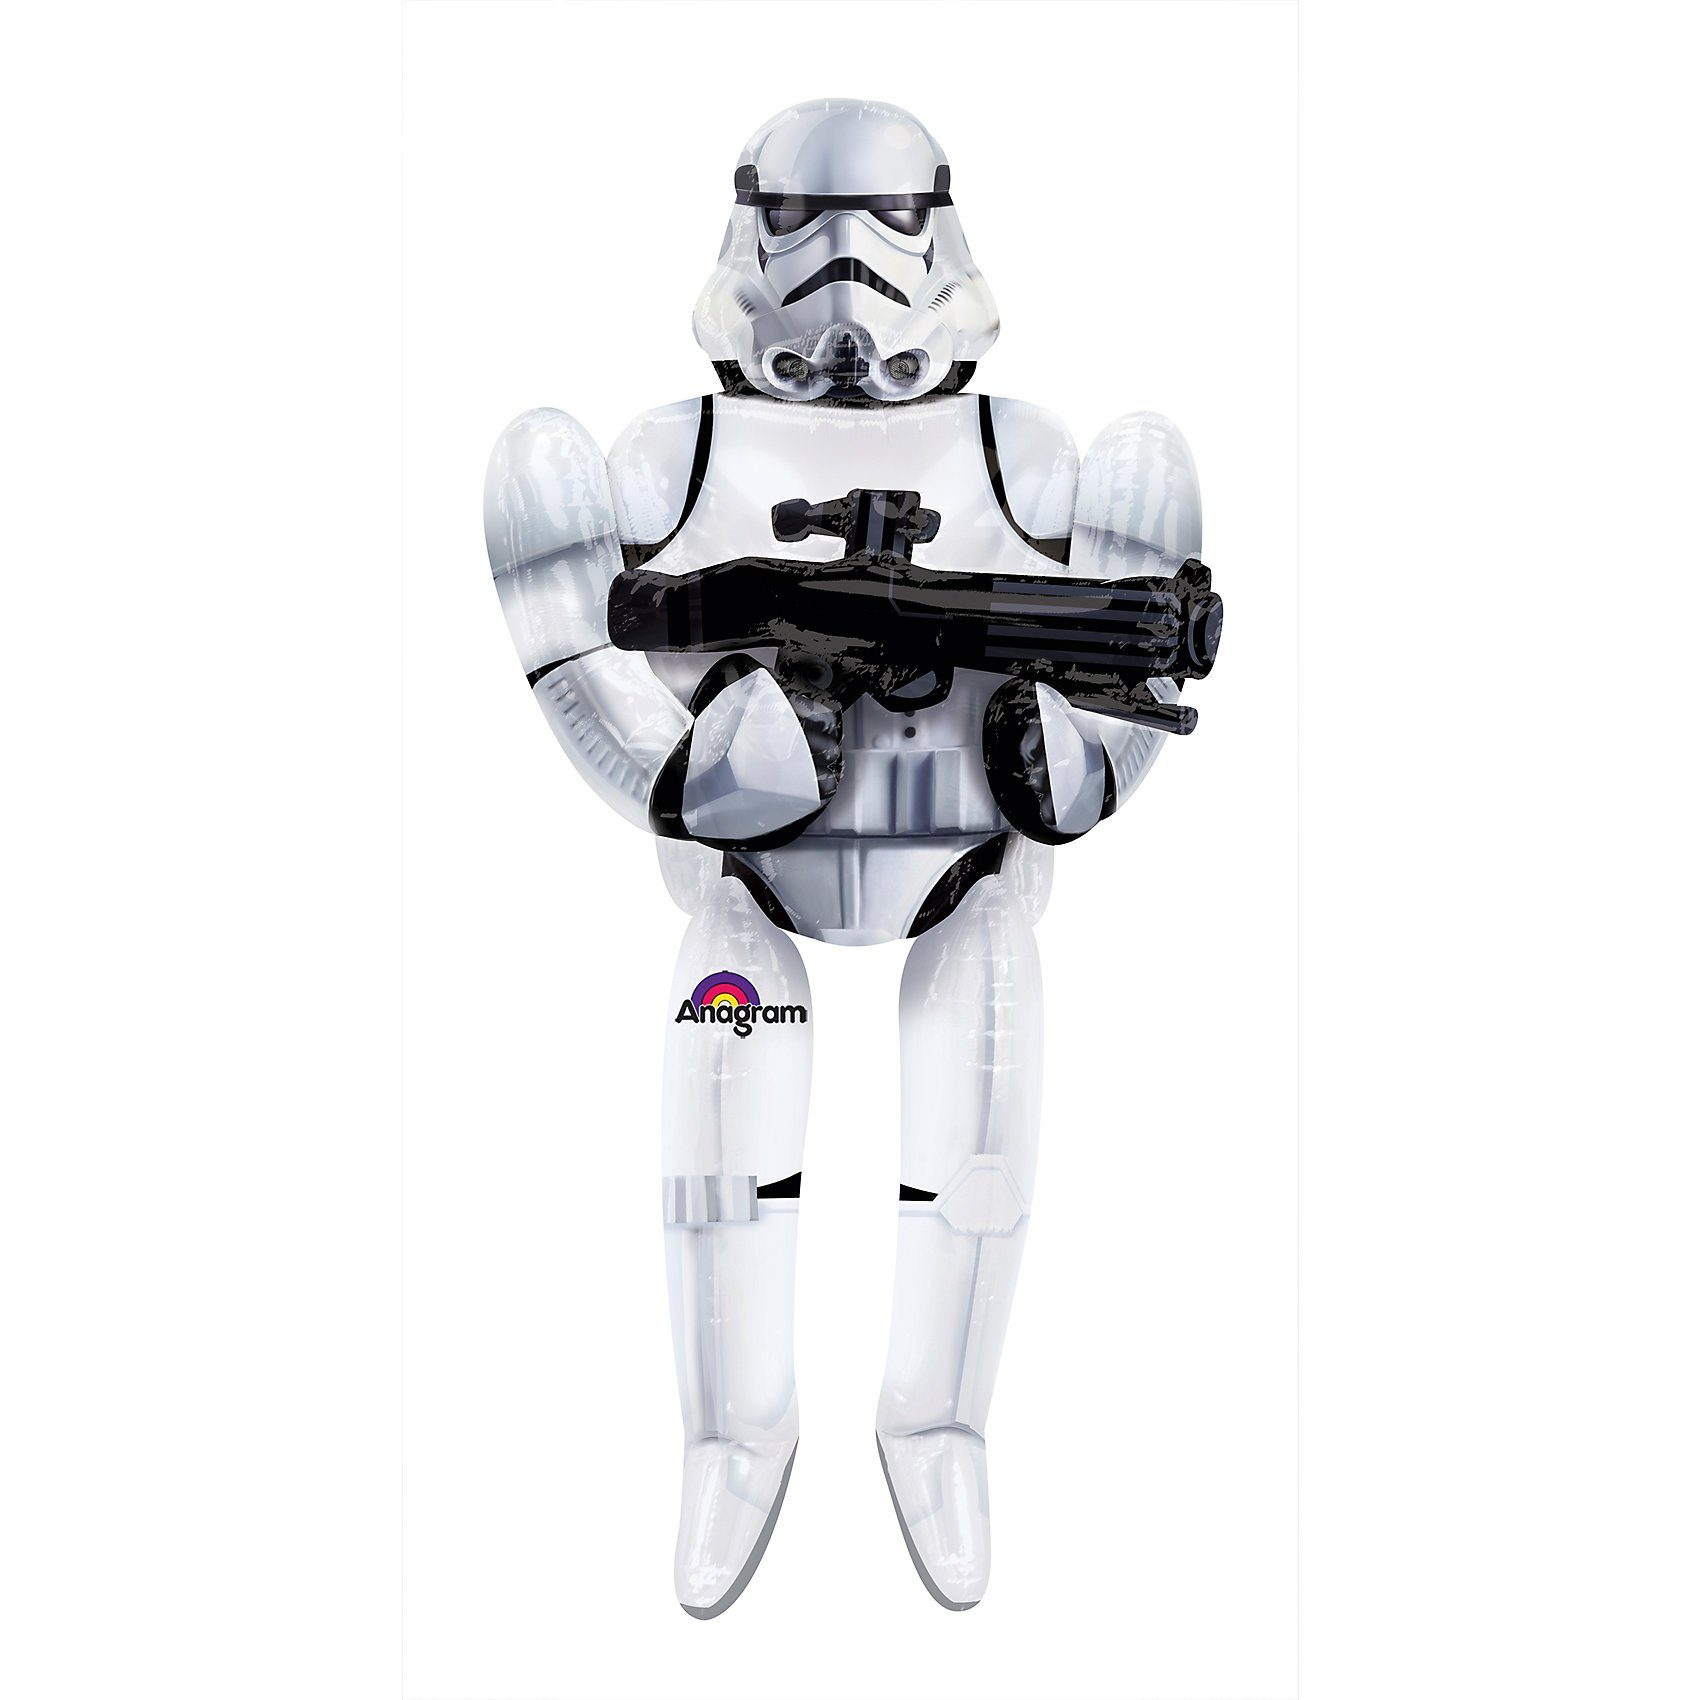 Amscan Folienballon AirWalker Star Wars Storm Trooper